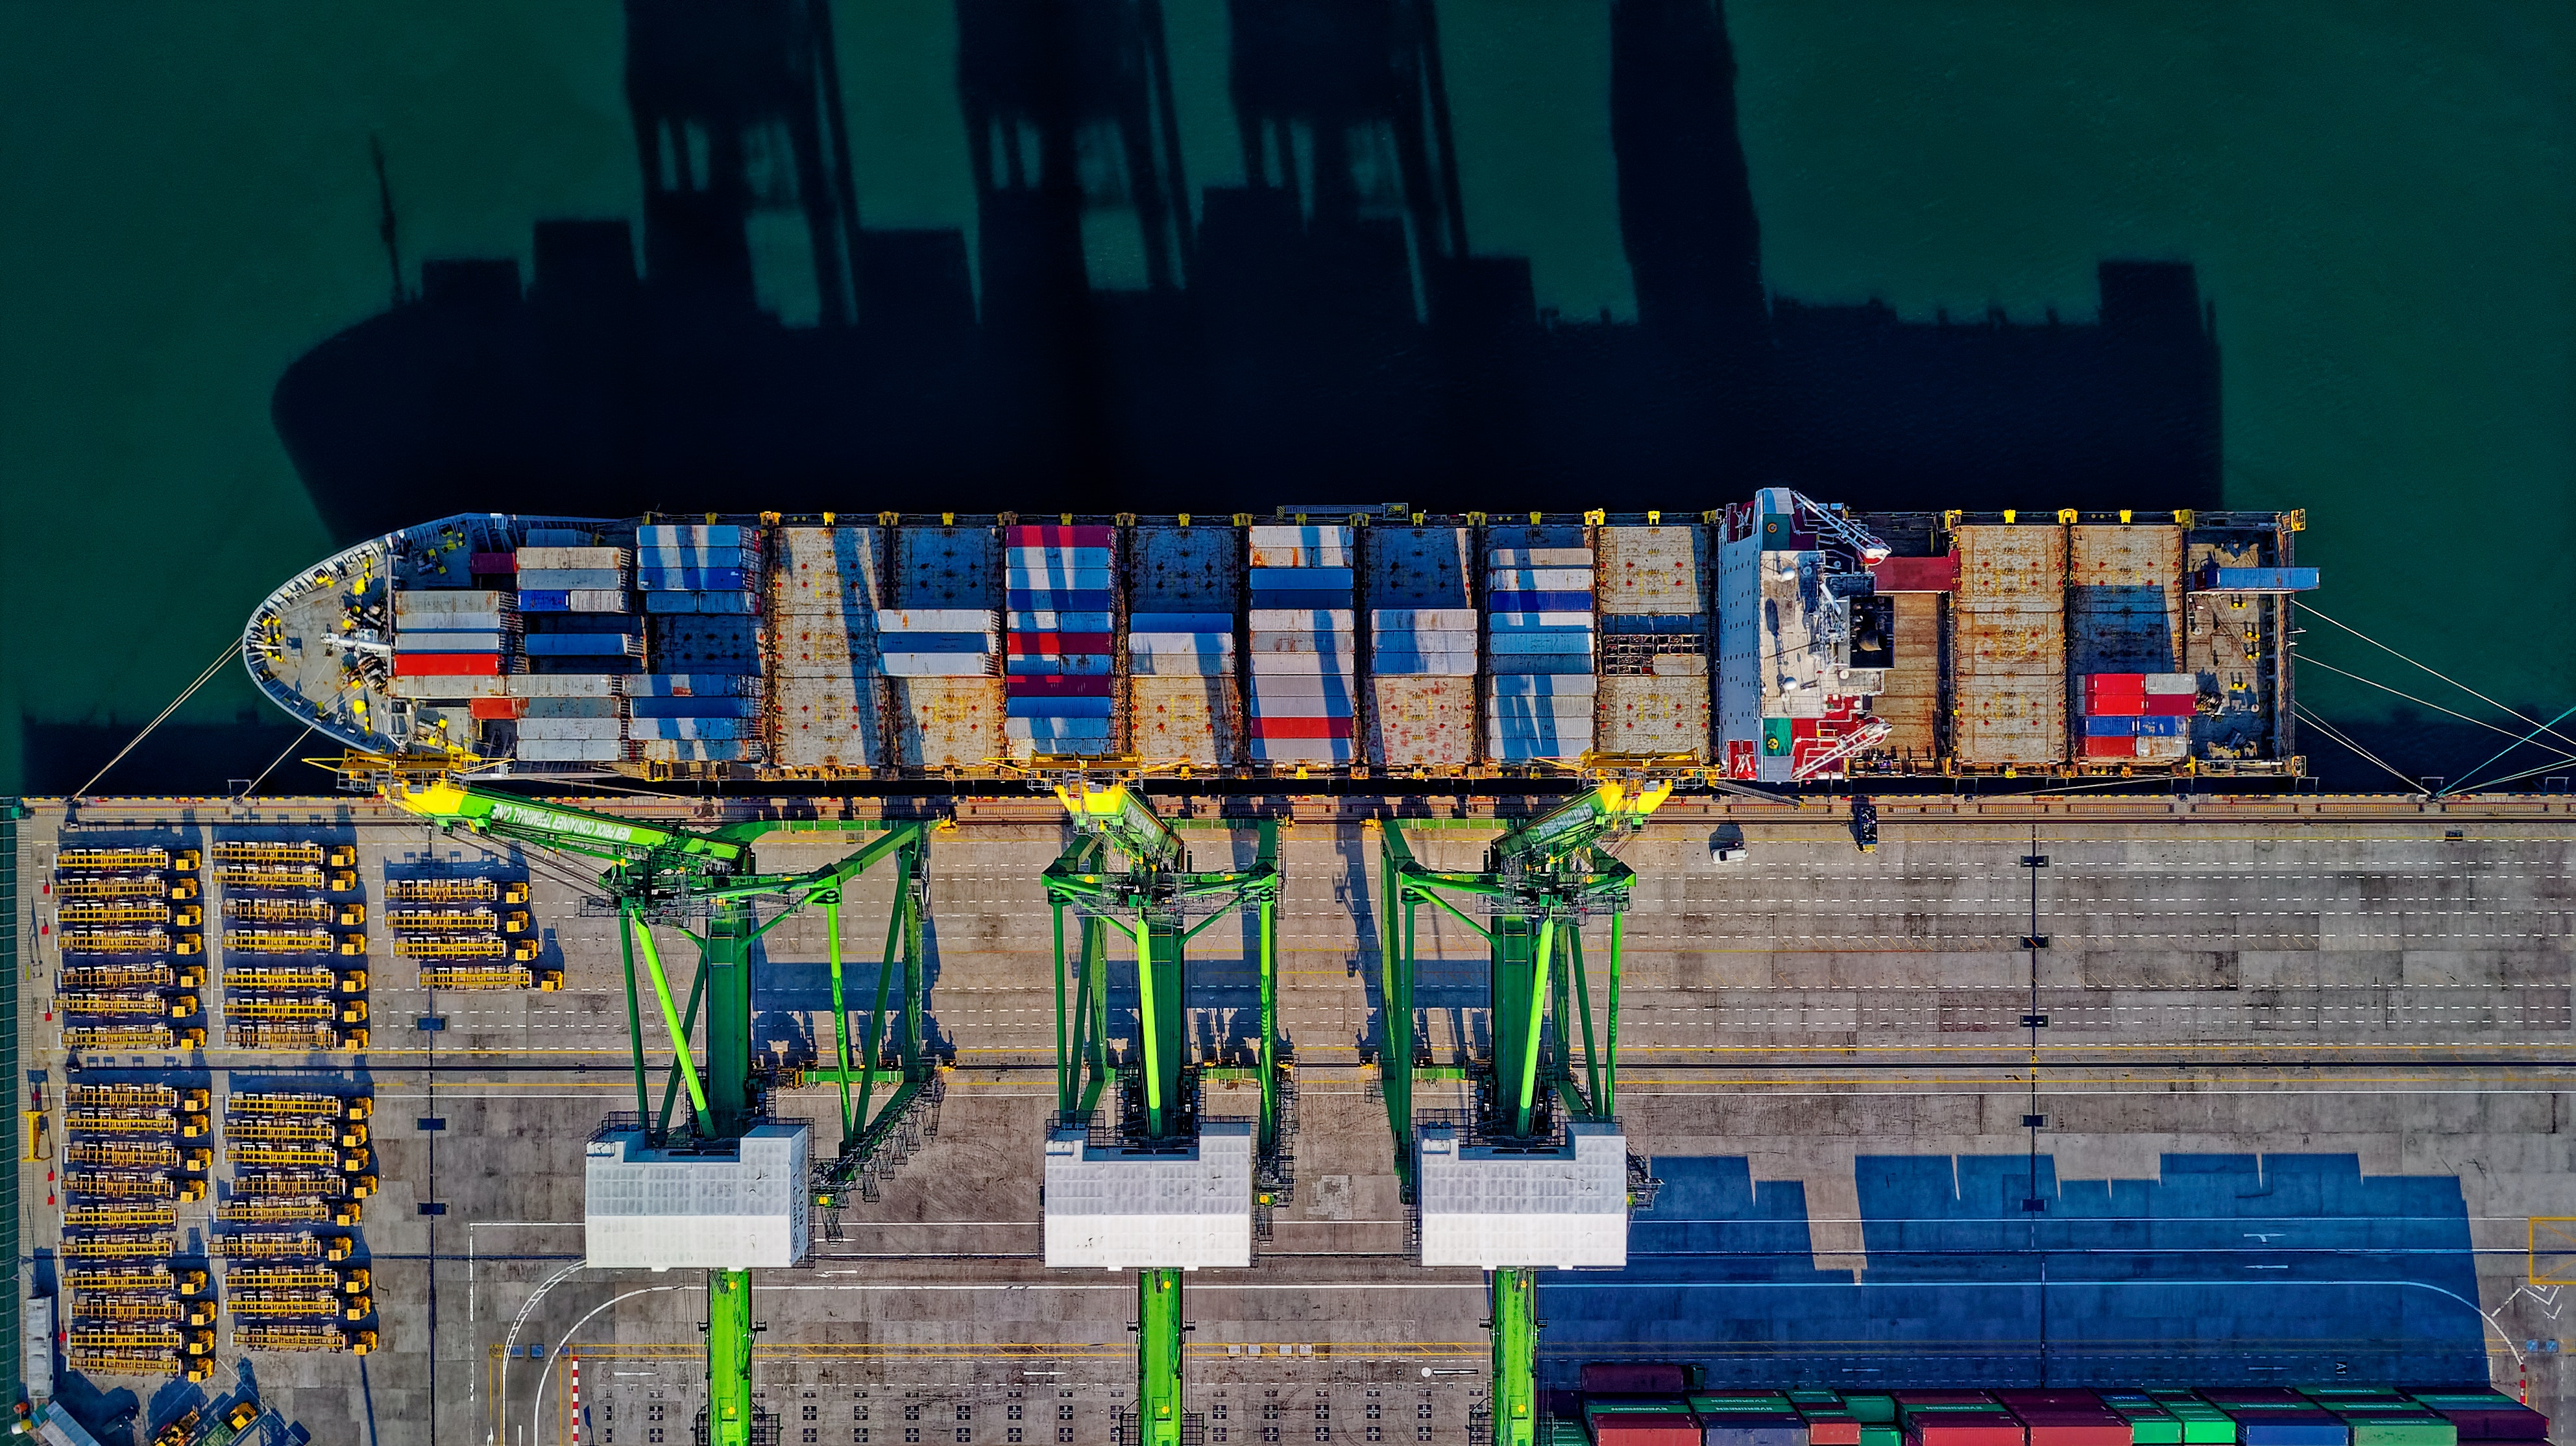 Shipping industry's COVID-19 resilience test could boost digitalization